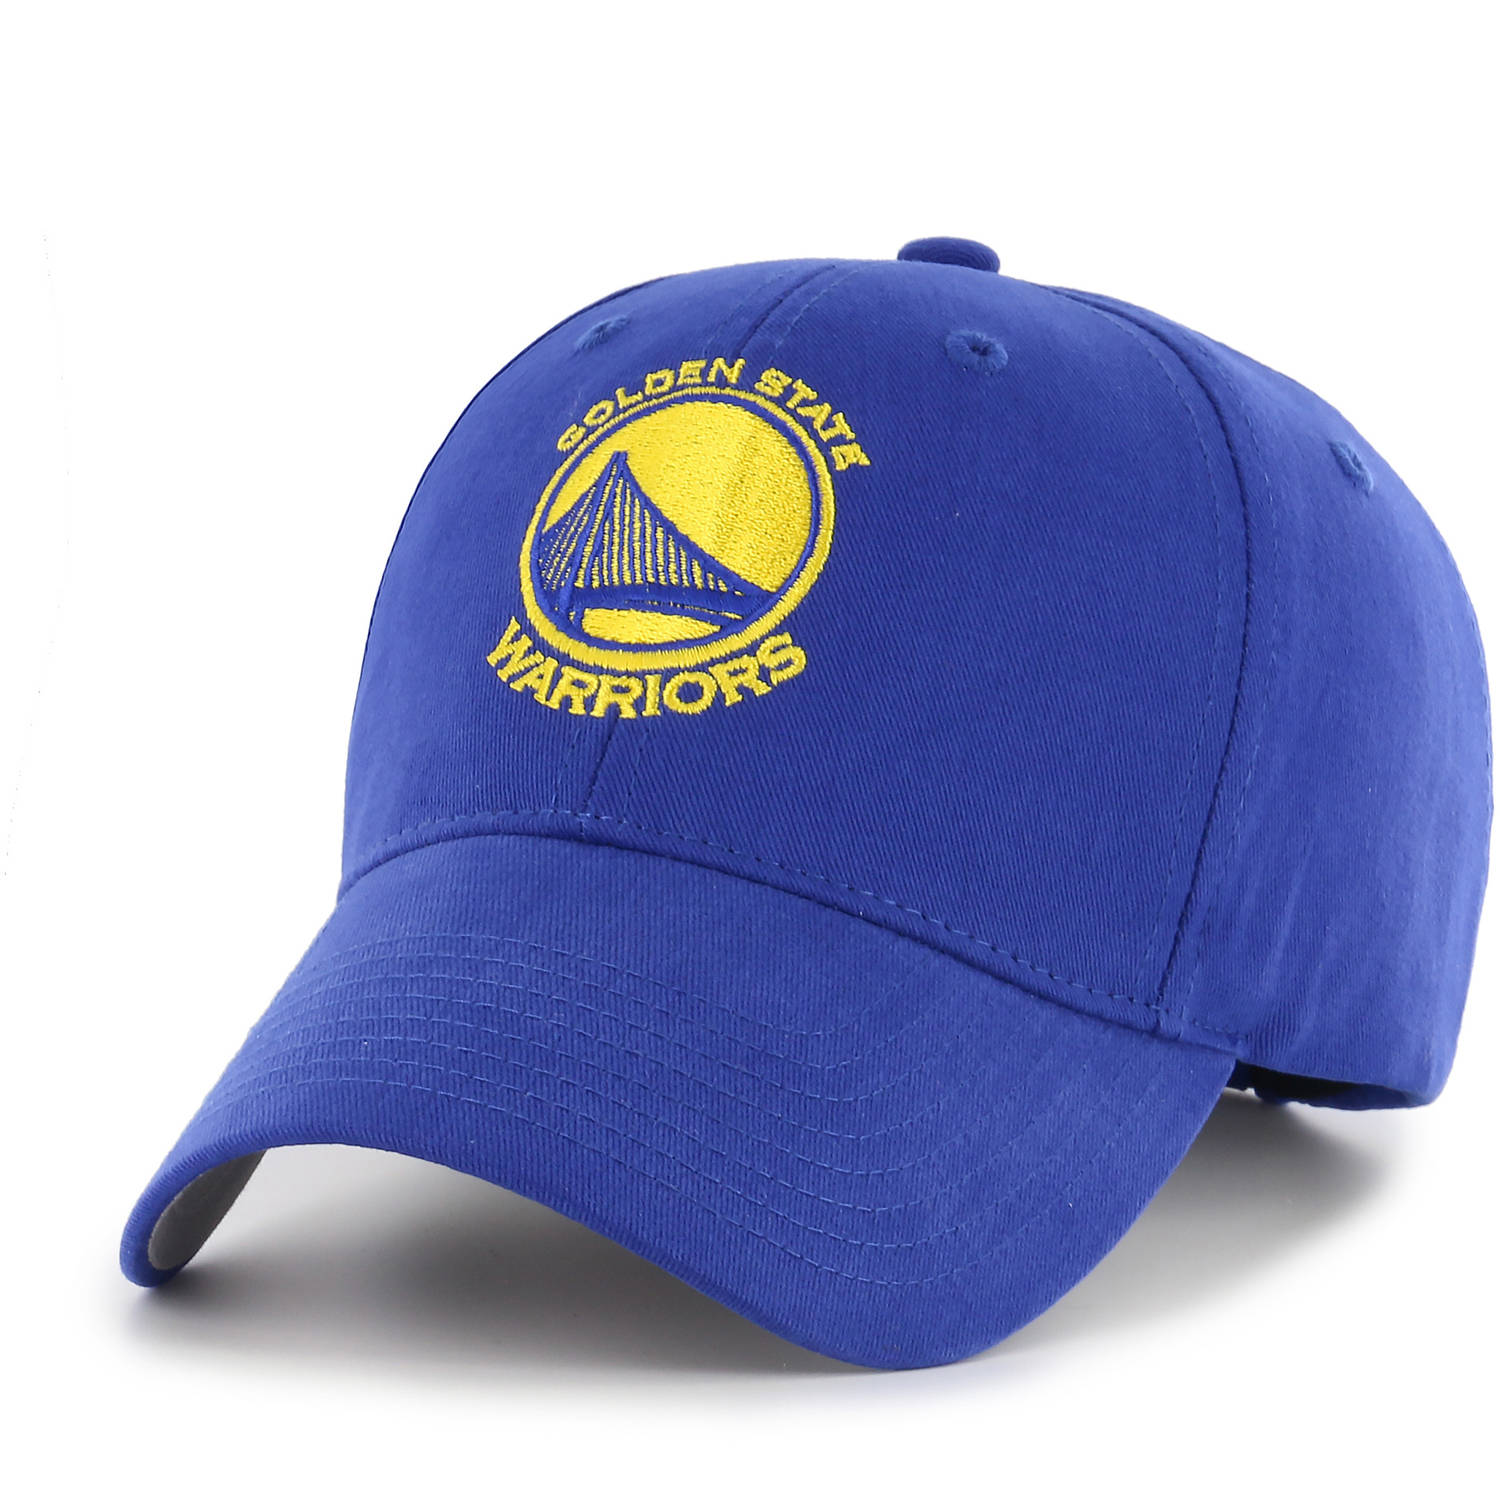 NBA Golden State Warriors Basic Cap/Hat - Fan Favorite